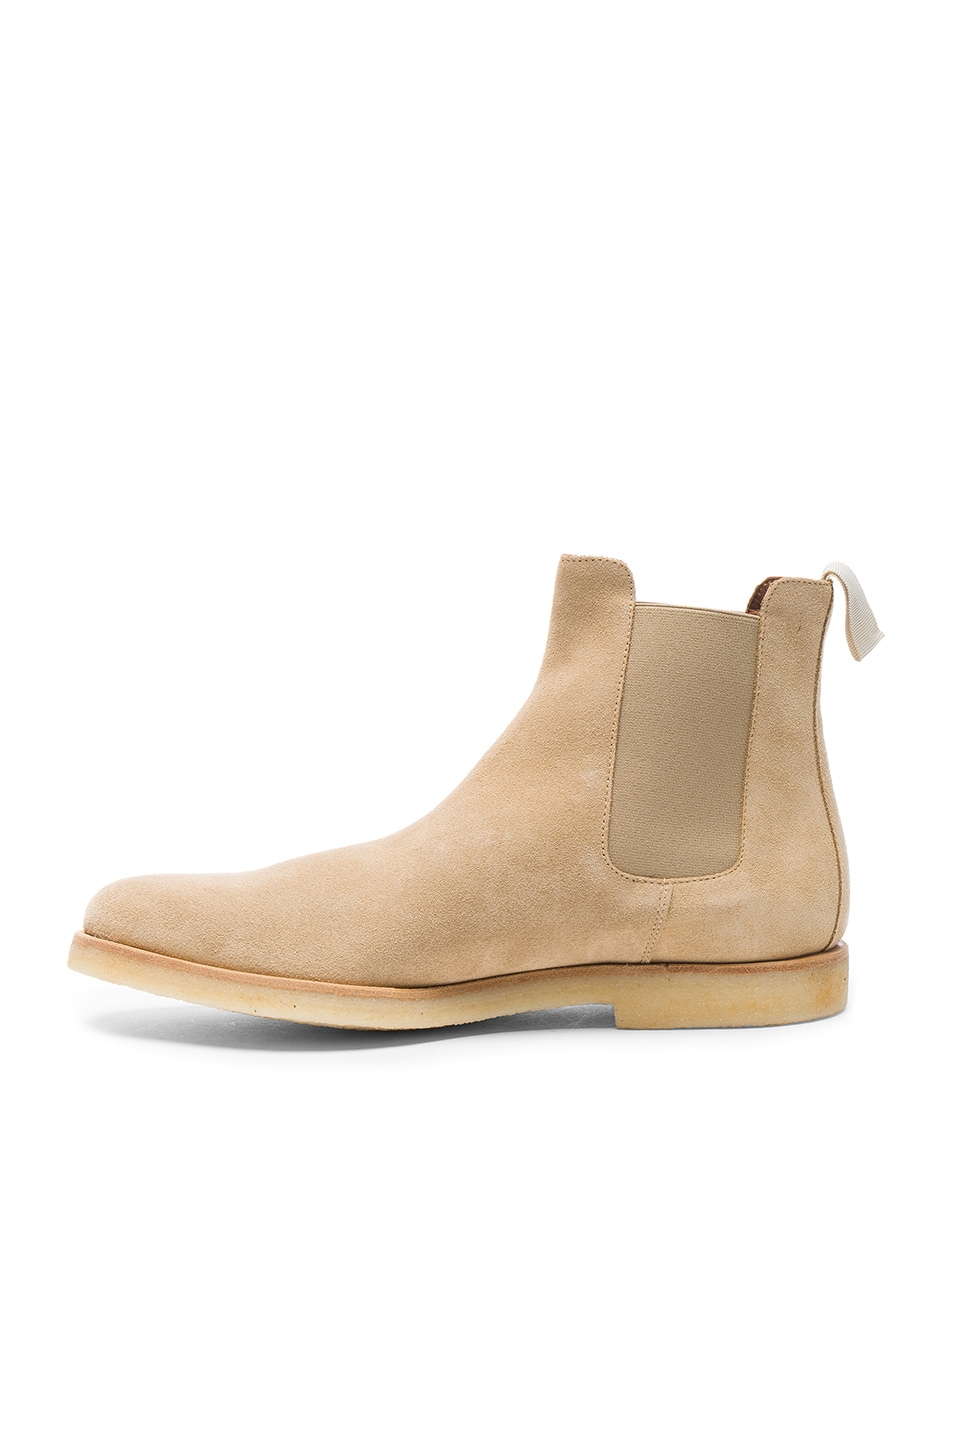 Image 5 of Common Projects Suede Chelsea Boots in Tan